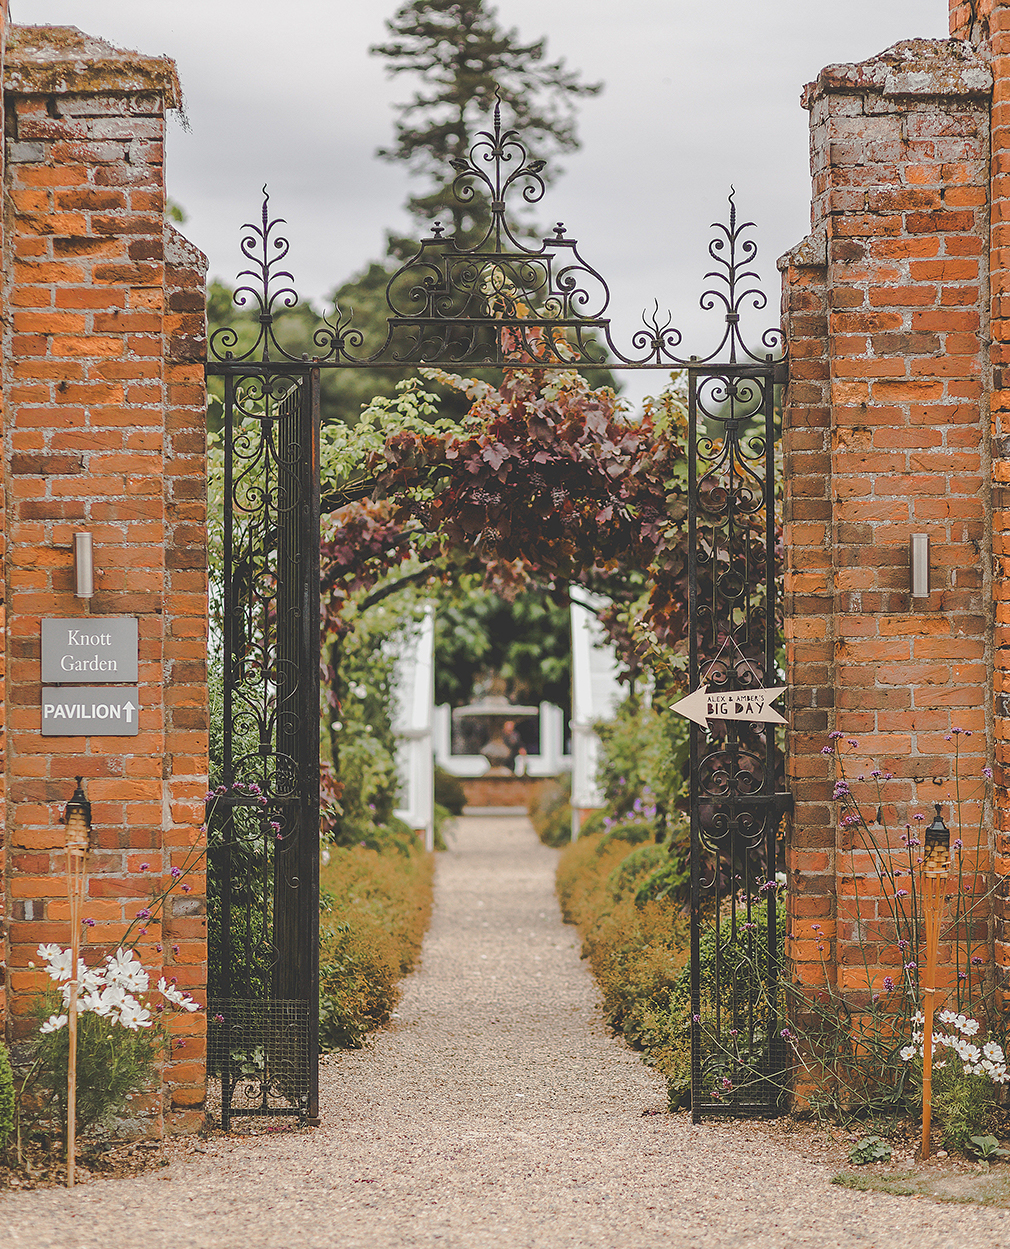 Stroll through the beautiful gardens and grounds at one of the finest wedding venues in Essex